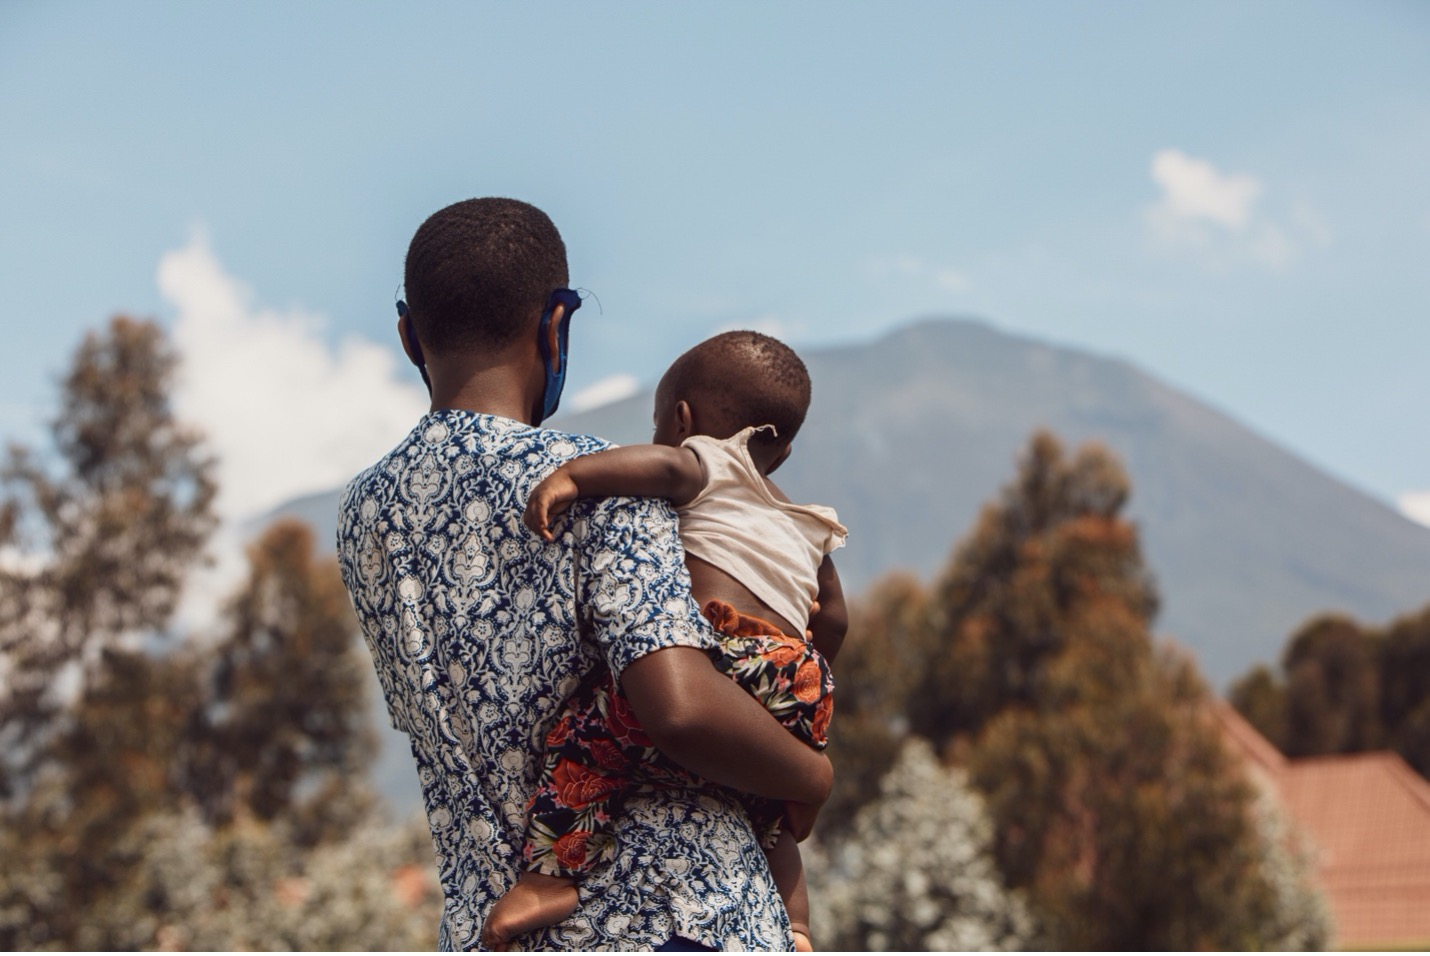 UN Women provides psychosocial support to teen mothers in Rwanda during the COVID-19 pandemic through the Mobile Clinics.